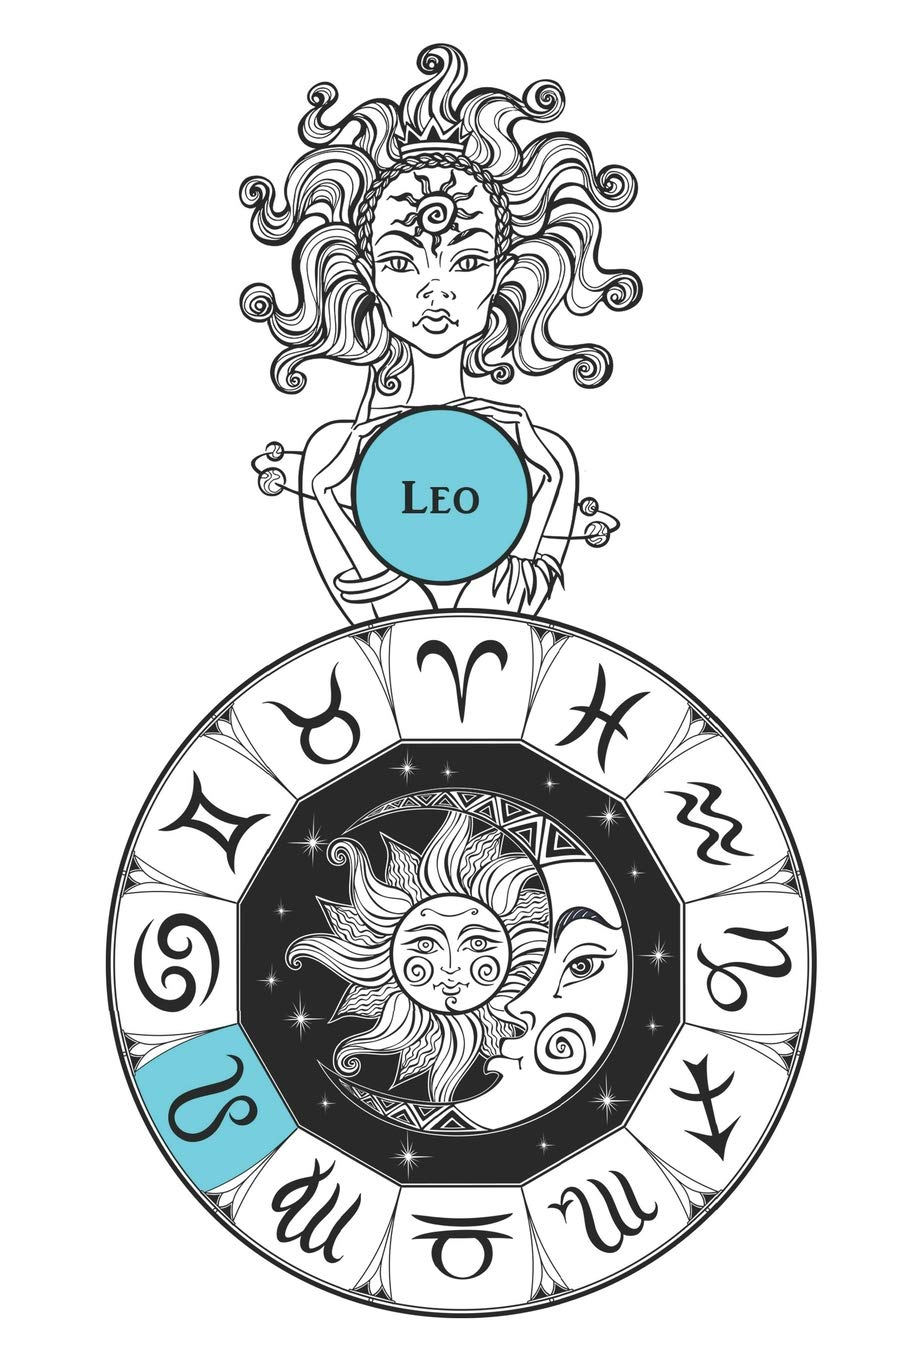 Amazon com: Leo: Notebook Journal Diary Zodiac Horoscope